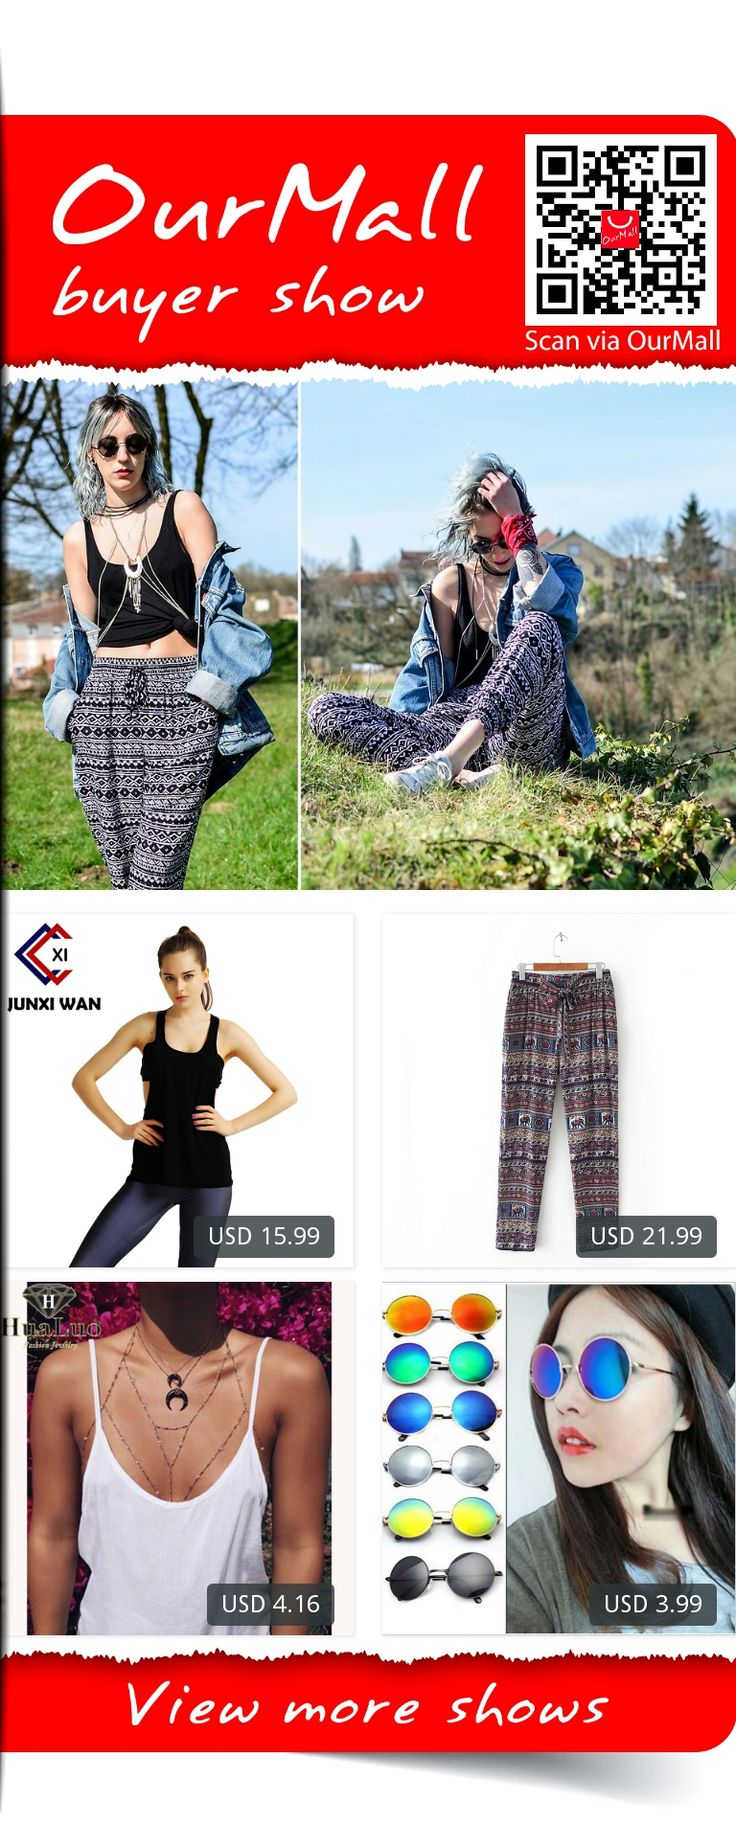 This is Saskia B.'s buyer show in OurMall;  1.Sexy Black Sport Yoga Racerback T-shirt Sexy Quick-dry Solid Tank Tops Loose Gym Fitness 2.Women's Pants Harem Trousers Pants with Elastic Waist Print Patterns Ladies 3.Hot Charming Body Chain Gold/Silver Color Summer Style Sex... please click the picture for detail. http://ourmall.com/?imeMby